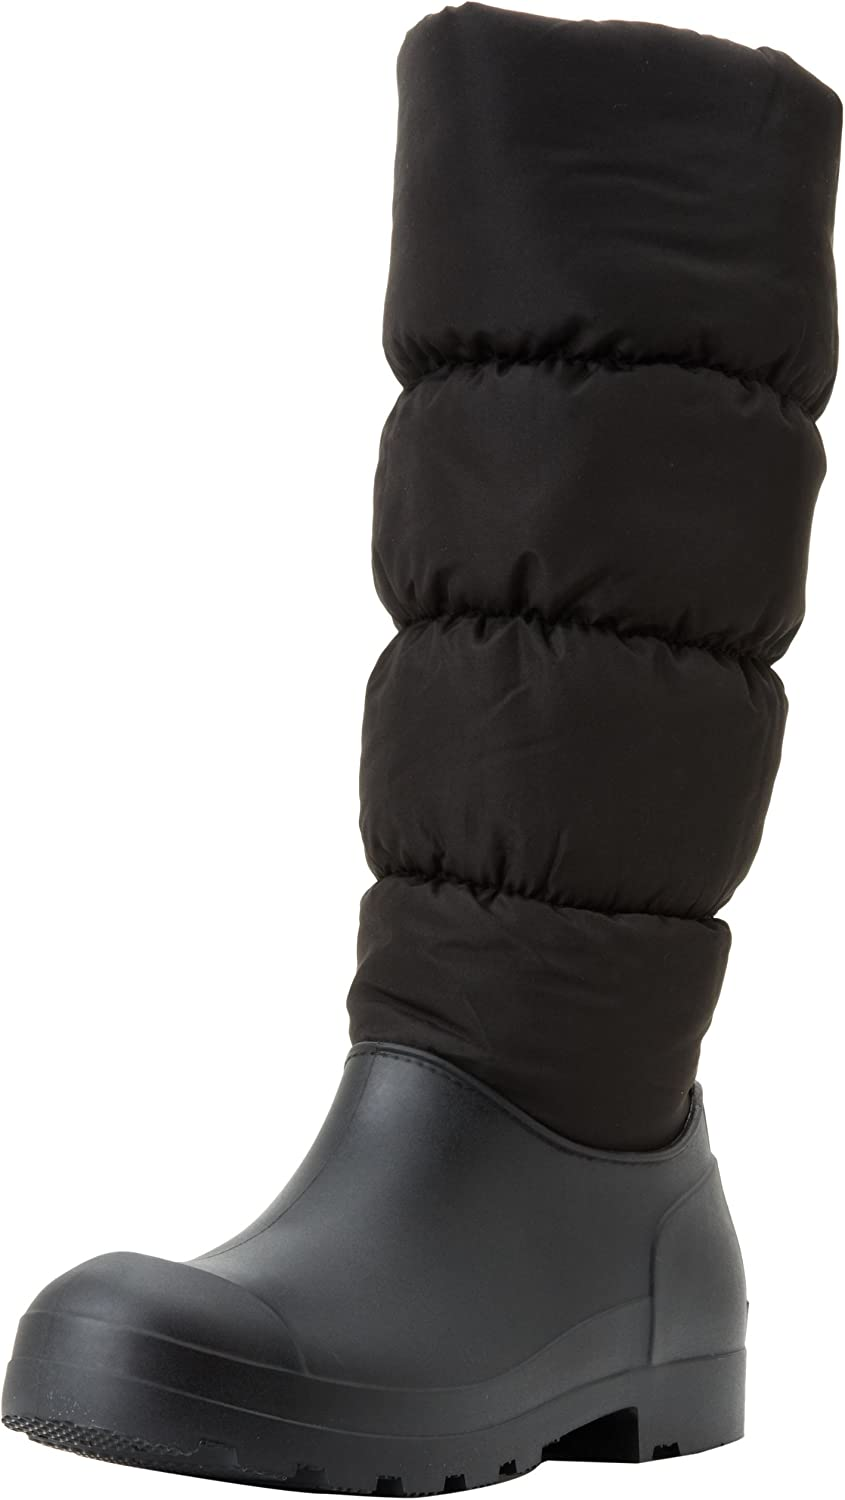 Dirty Laundry by Chinese Laundry Women's Paz Boot